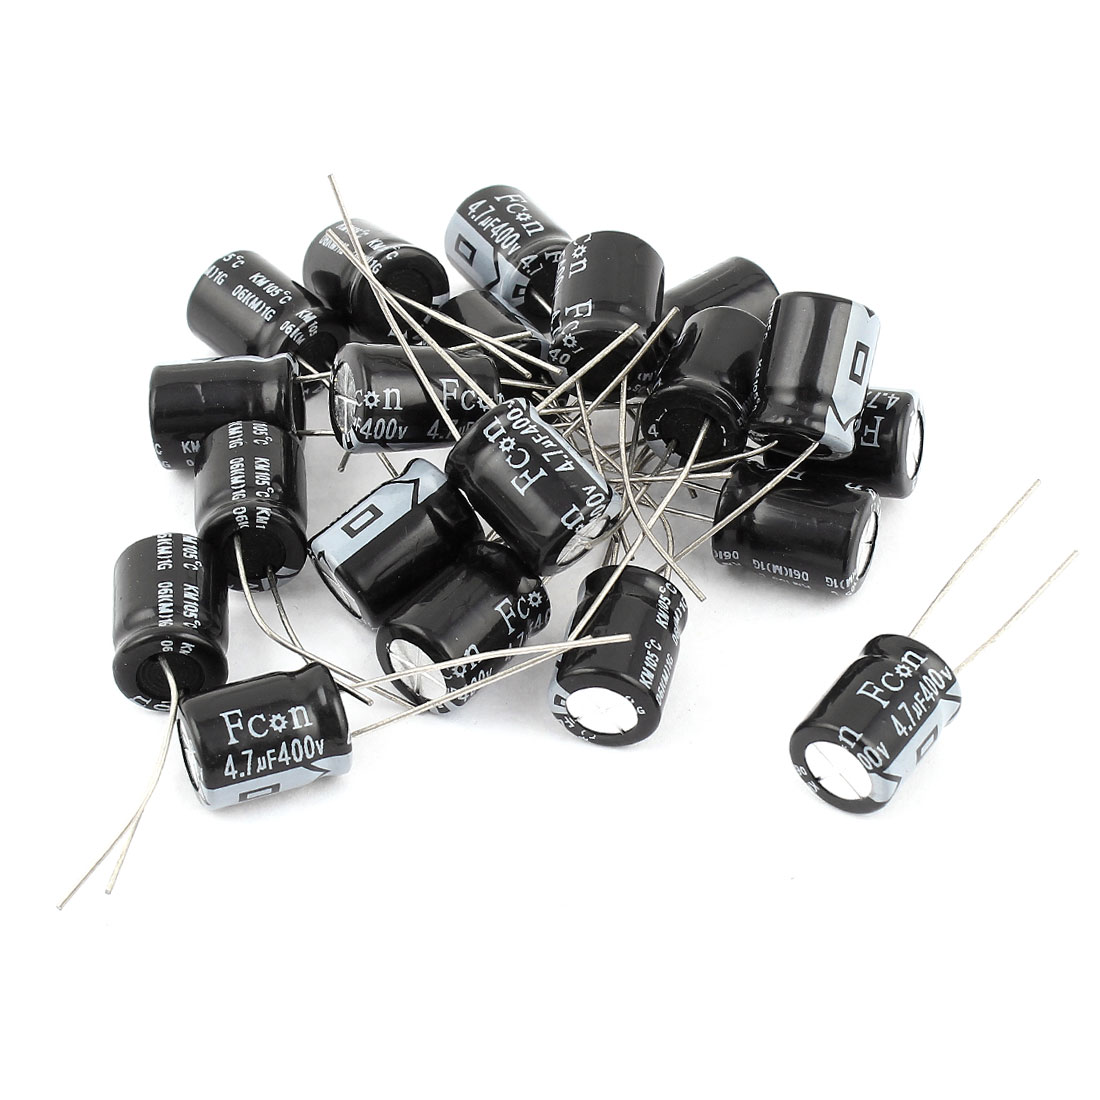 20PCS 4.7uF 400V 10x13mm Through Hole Radial Lead Aluminium Electrolytic Capacitor